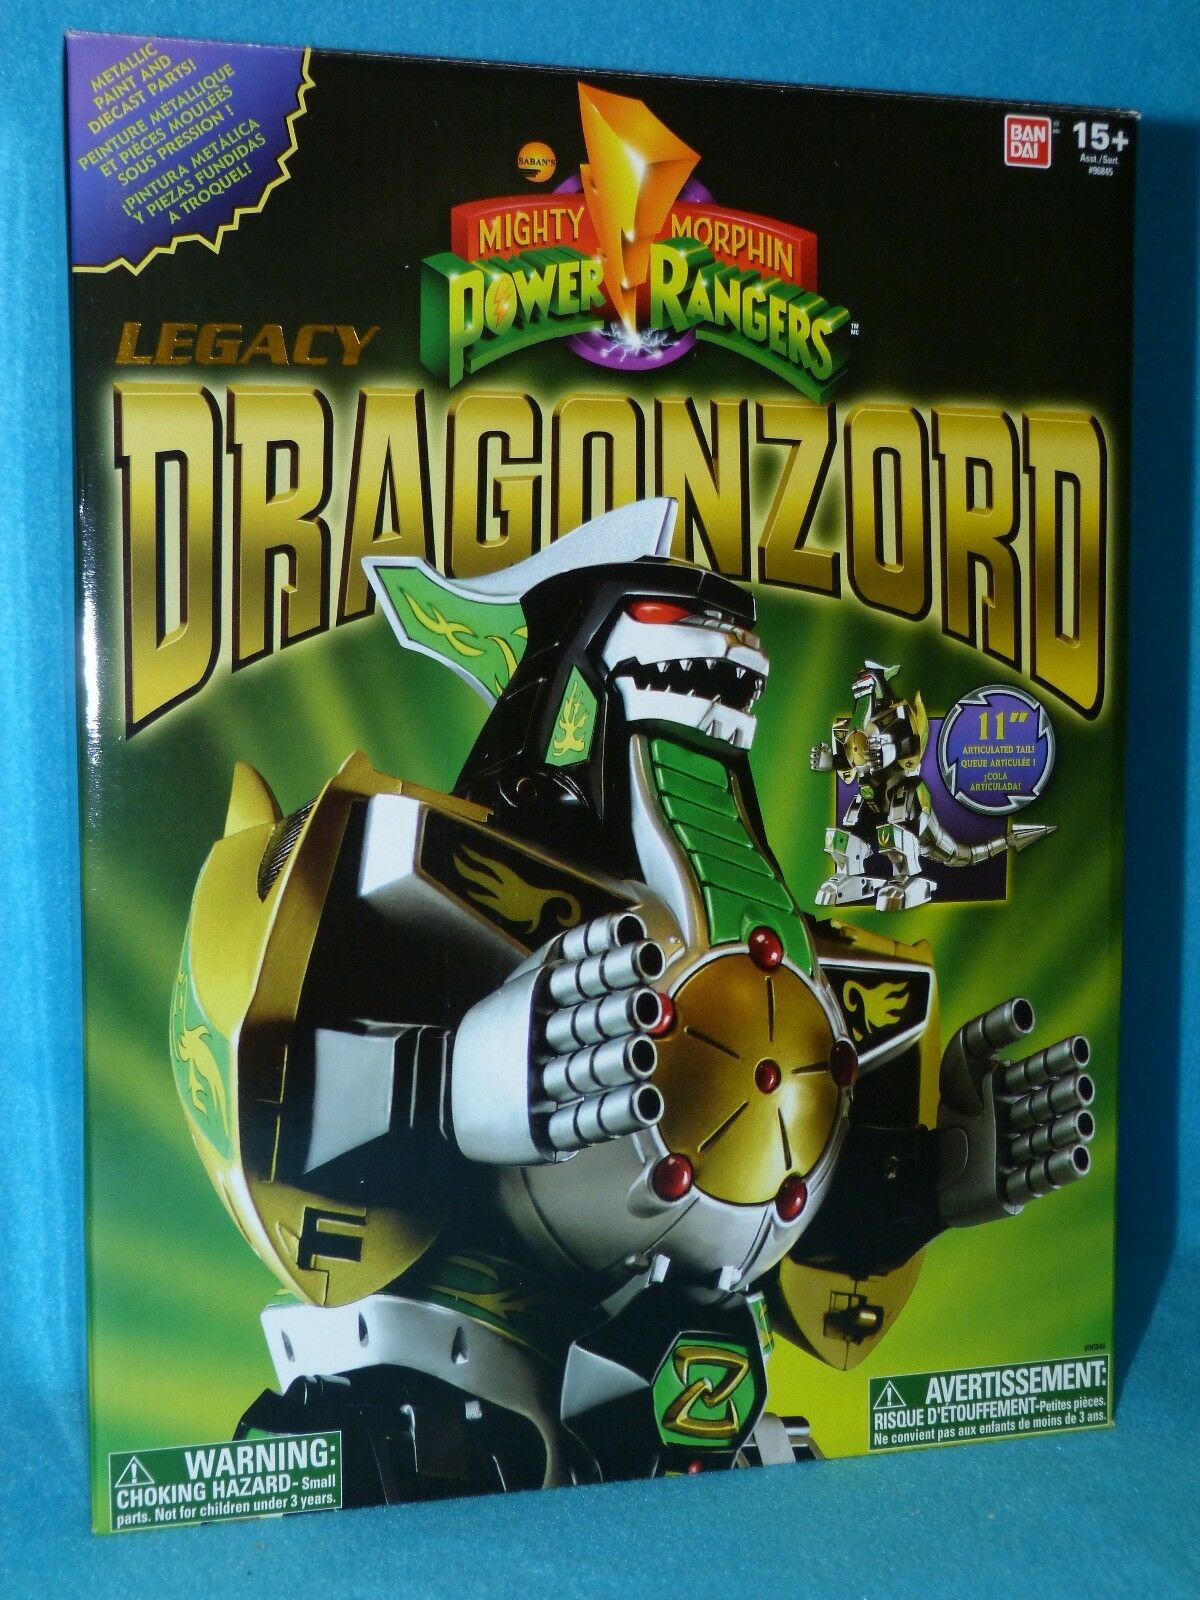 Legado Dragonzord-Mighty Morphin Power Rangers-Power Rangers